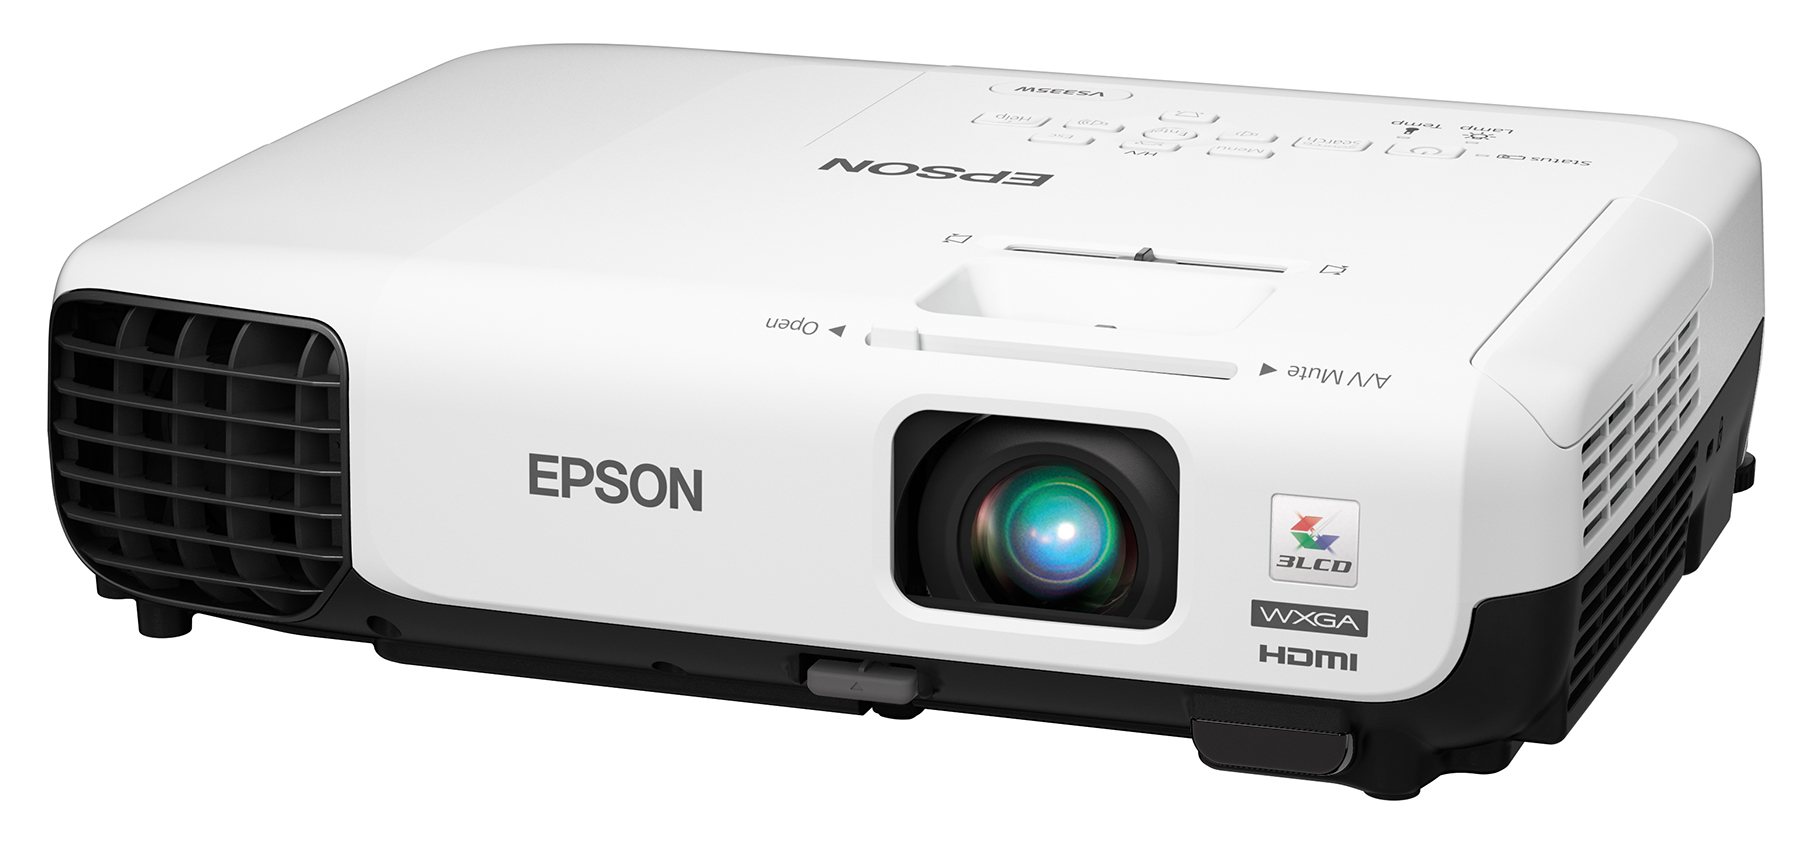 Epson vs335 wxga 1280 x 800 3lcd widescreen hd projector for Smallest full hd projector